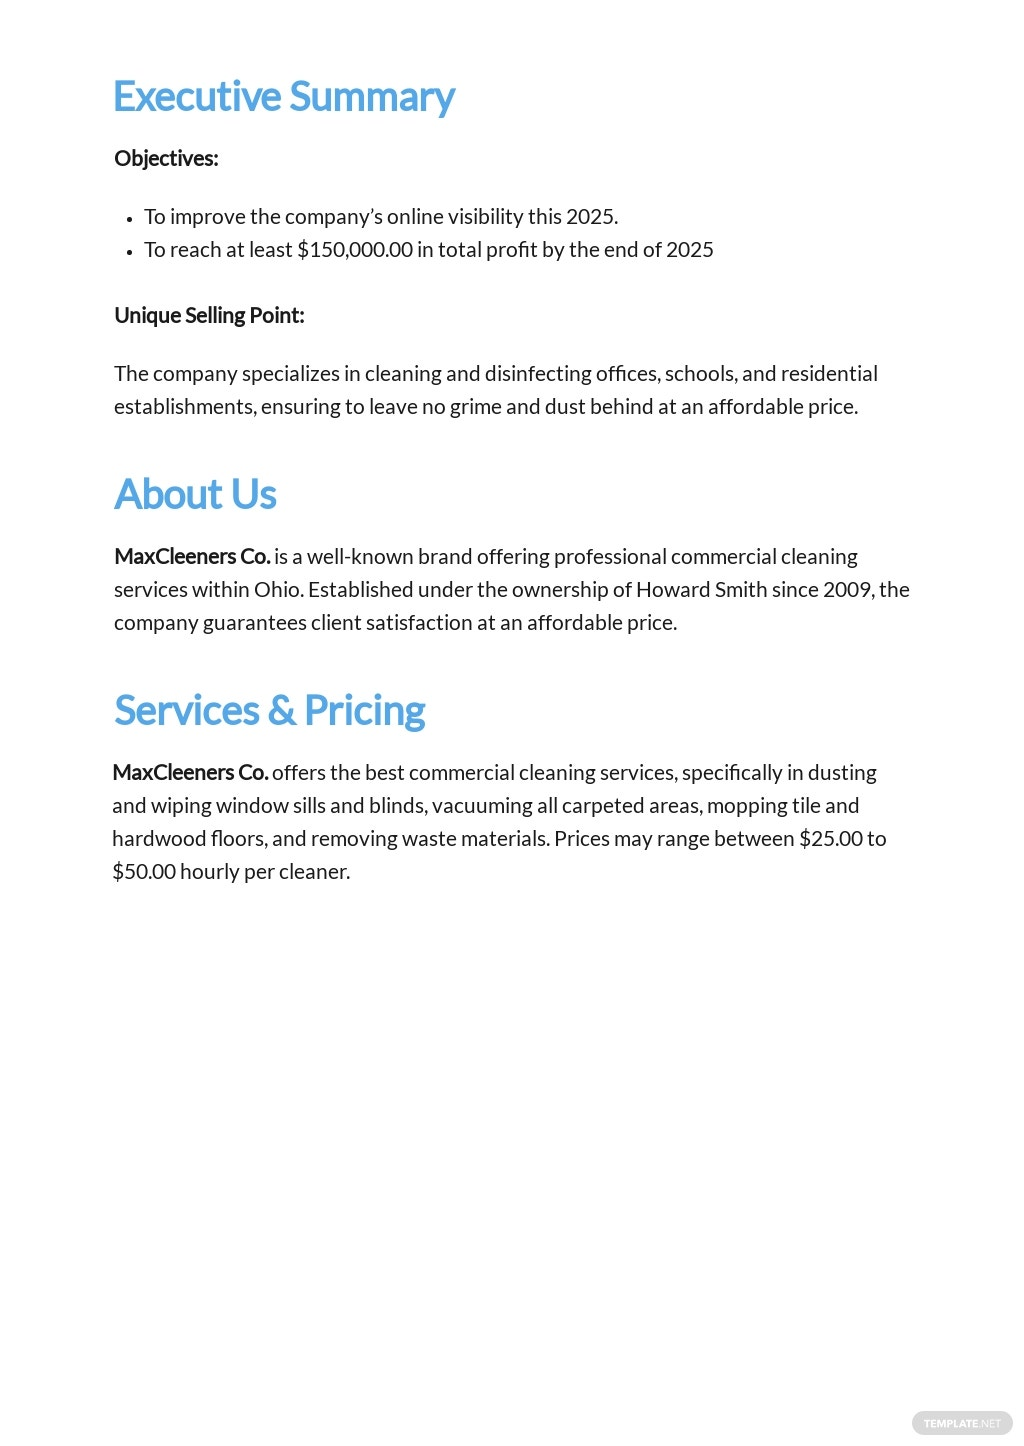 Commercial Cleaning Service Business Plan Template 1.jpe